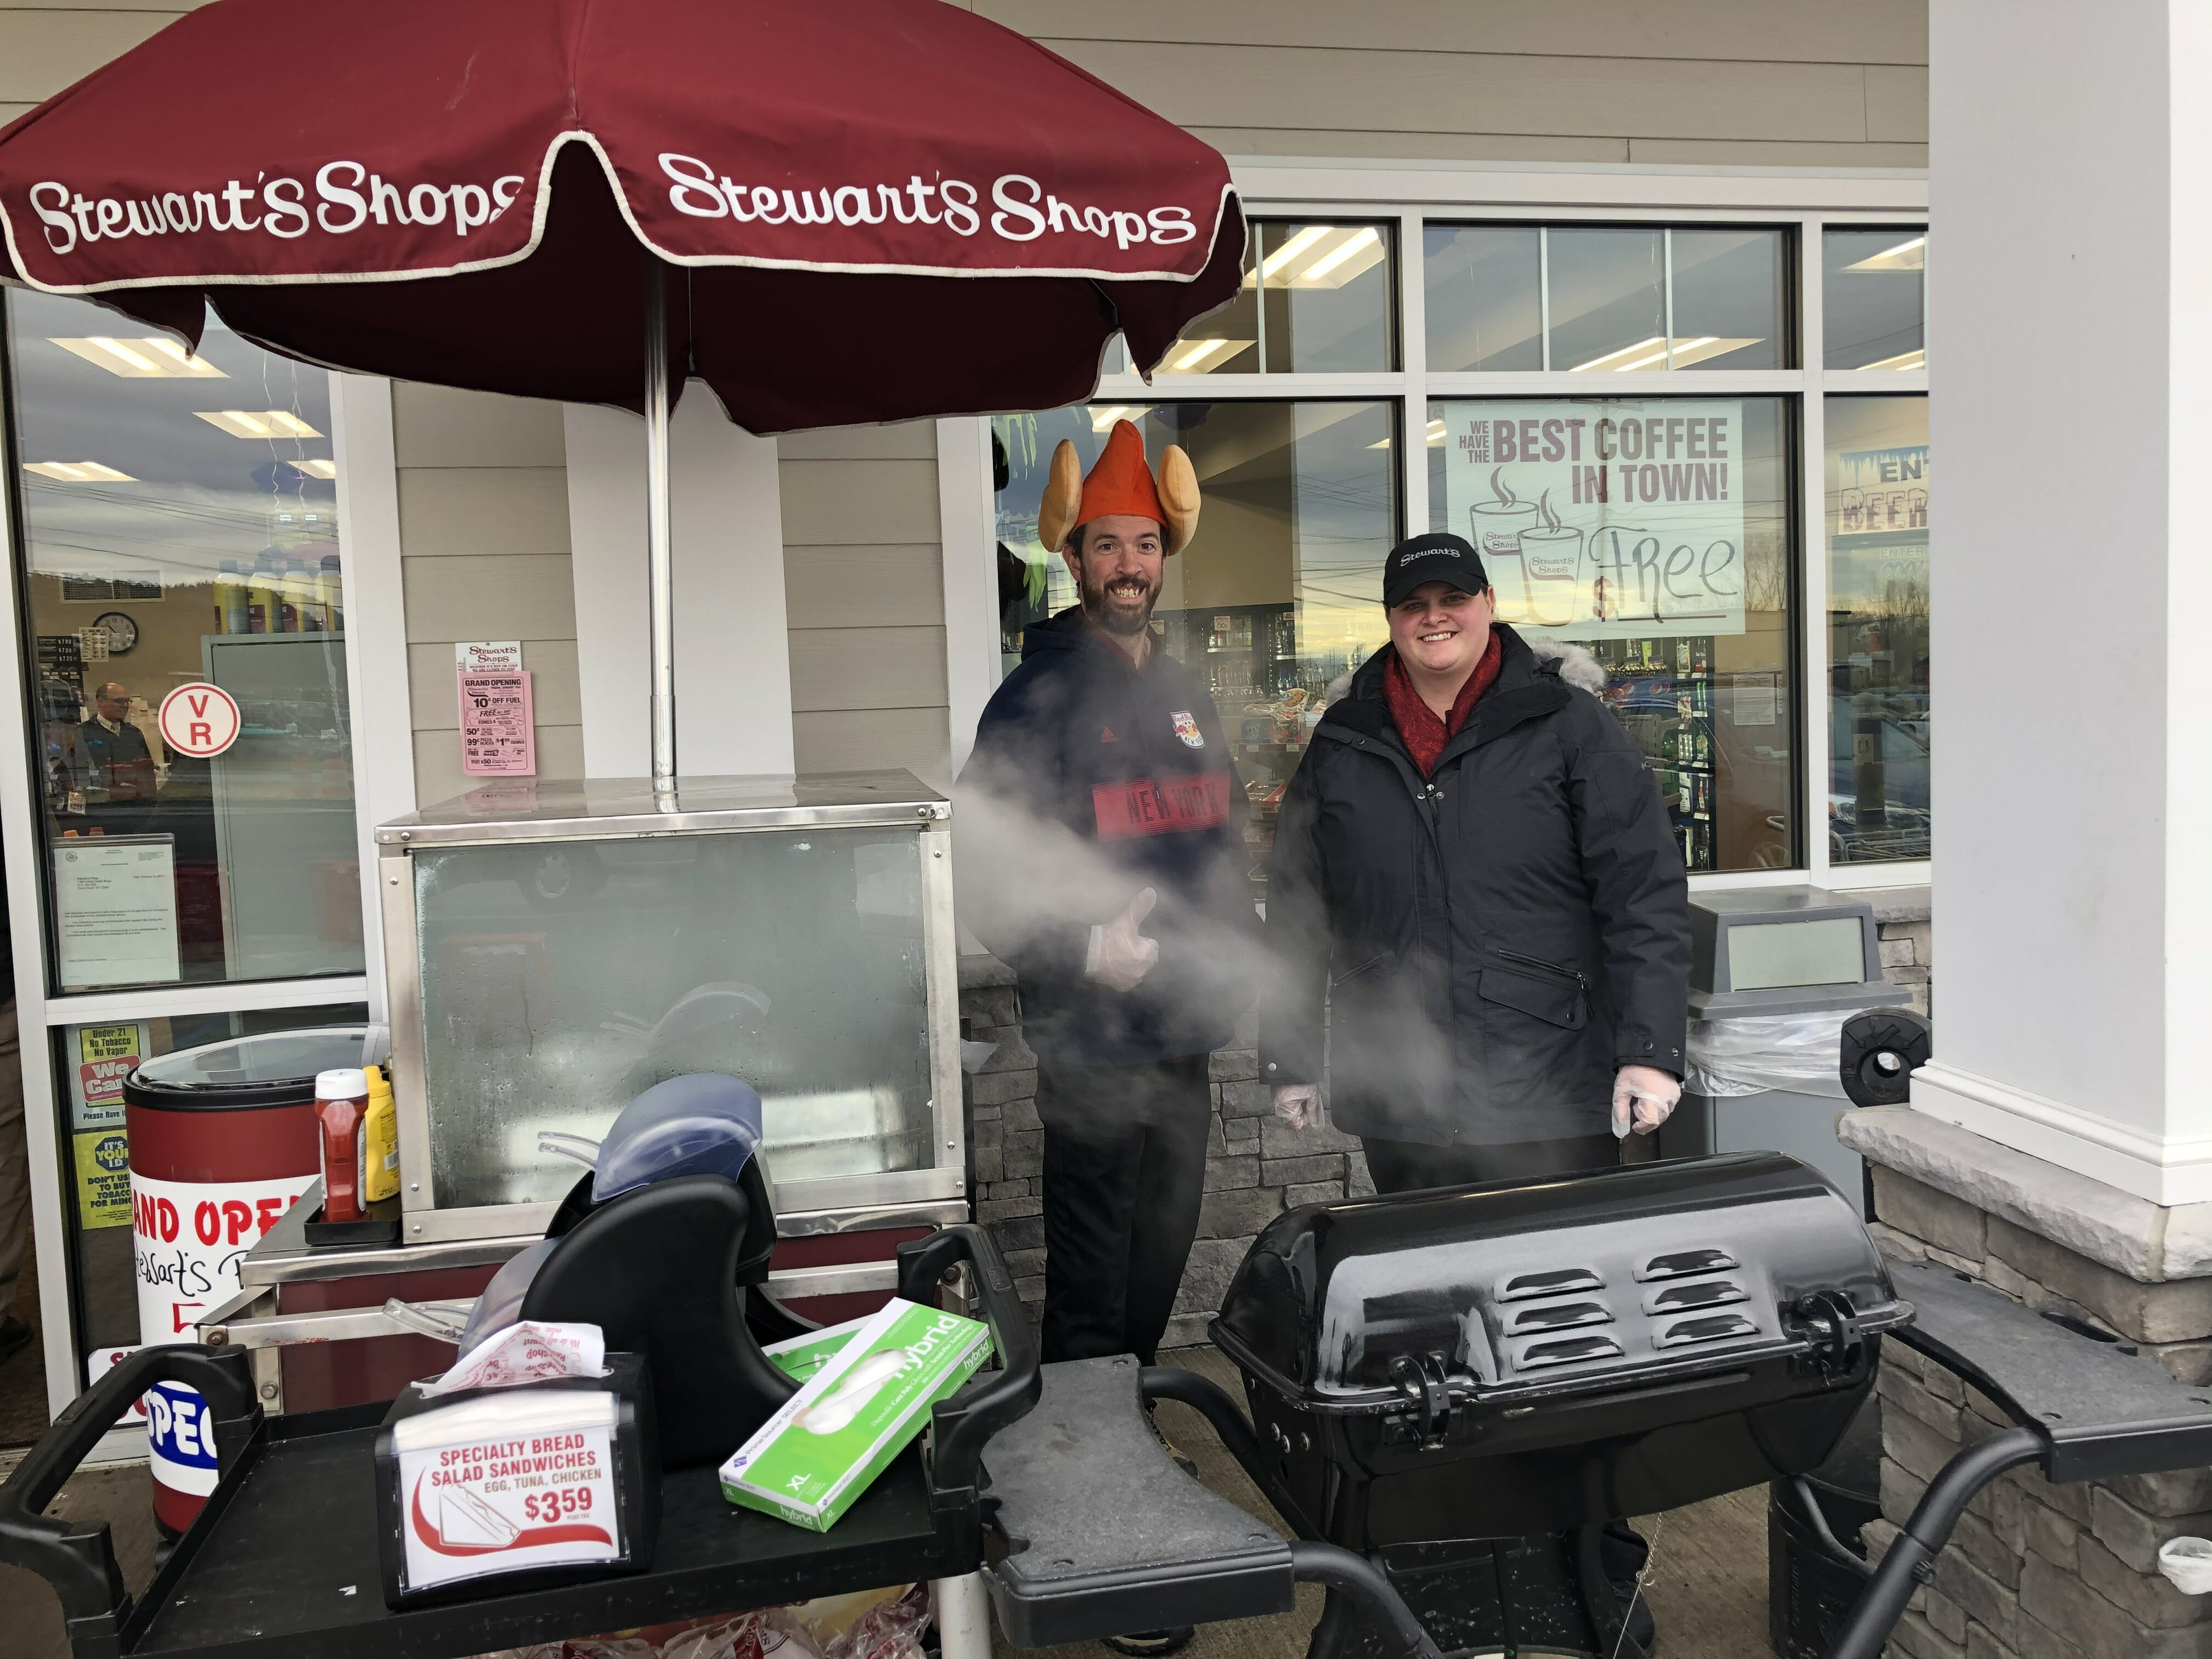 Selling hot dogs outside the shop at the event. Two employees, one wearing a hot dog hat